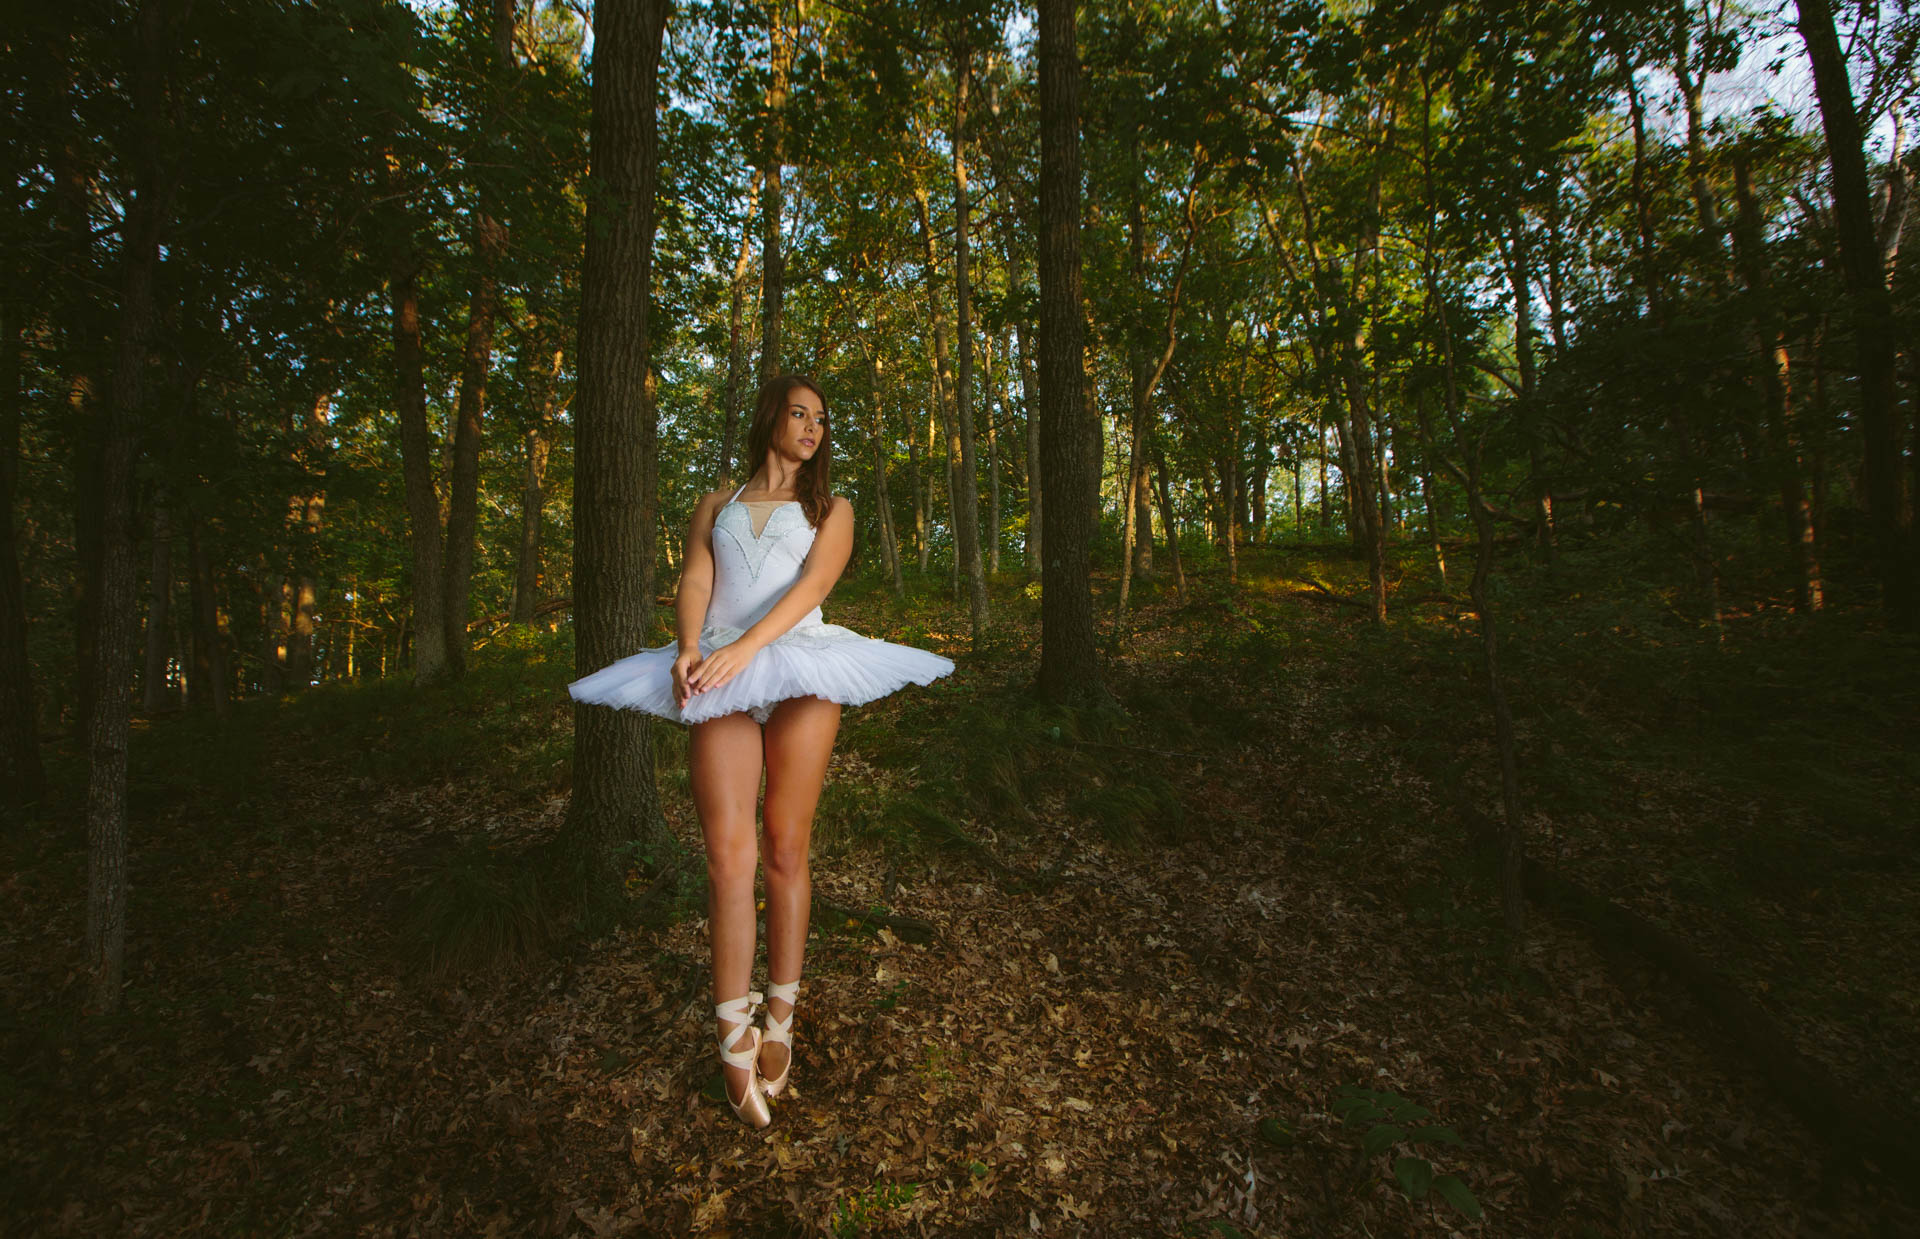 grace-ballerina-on-pointe-in-forest-white-tutu-1512